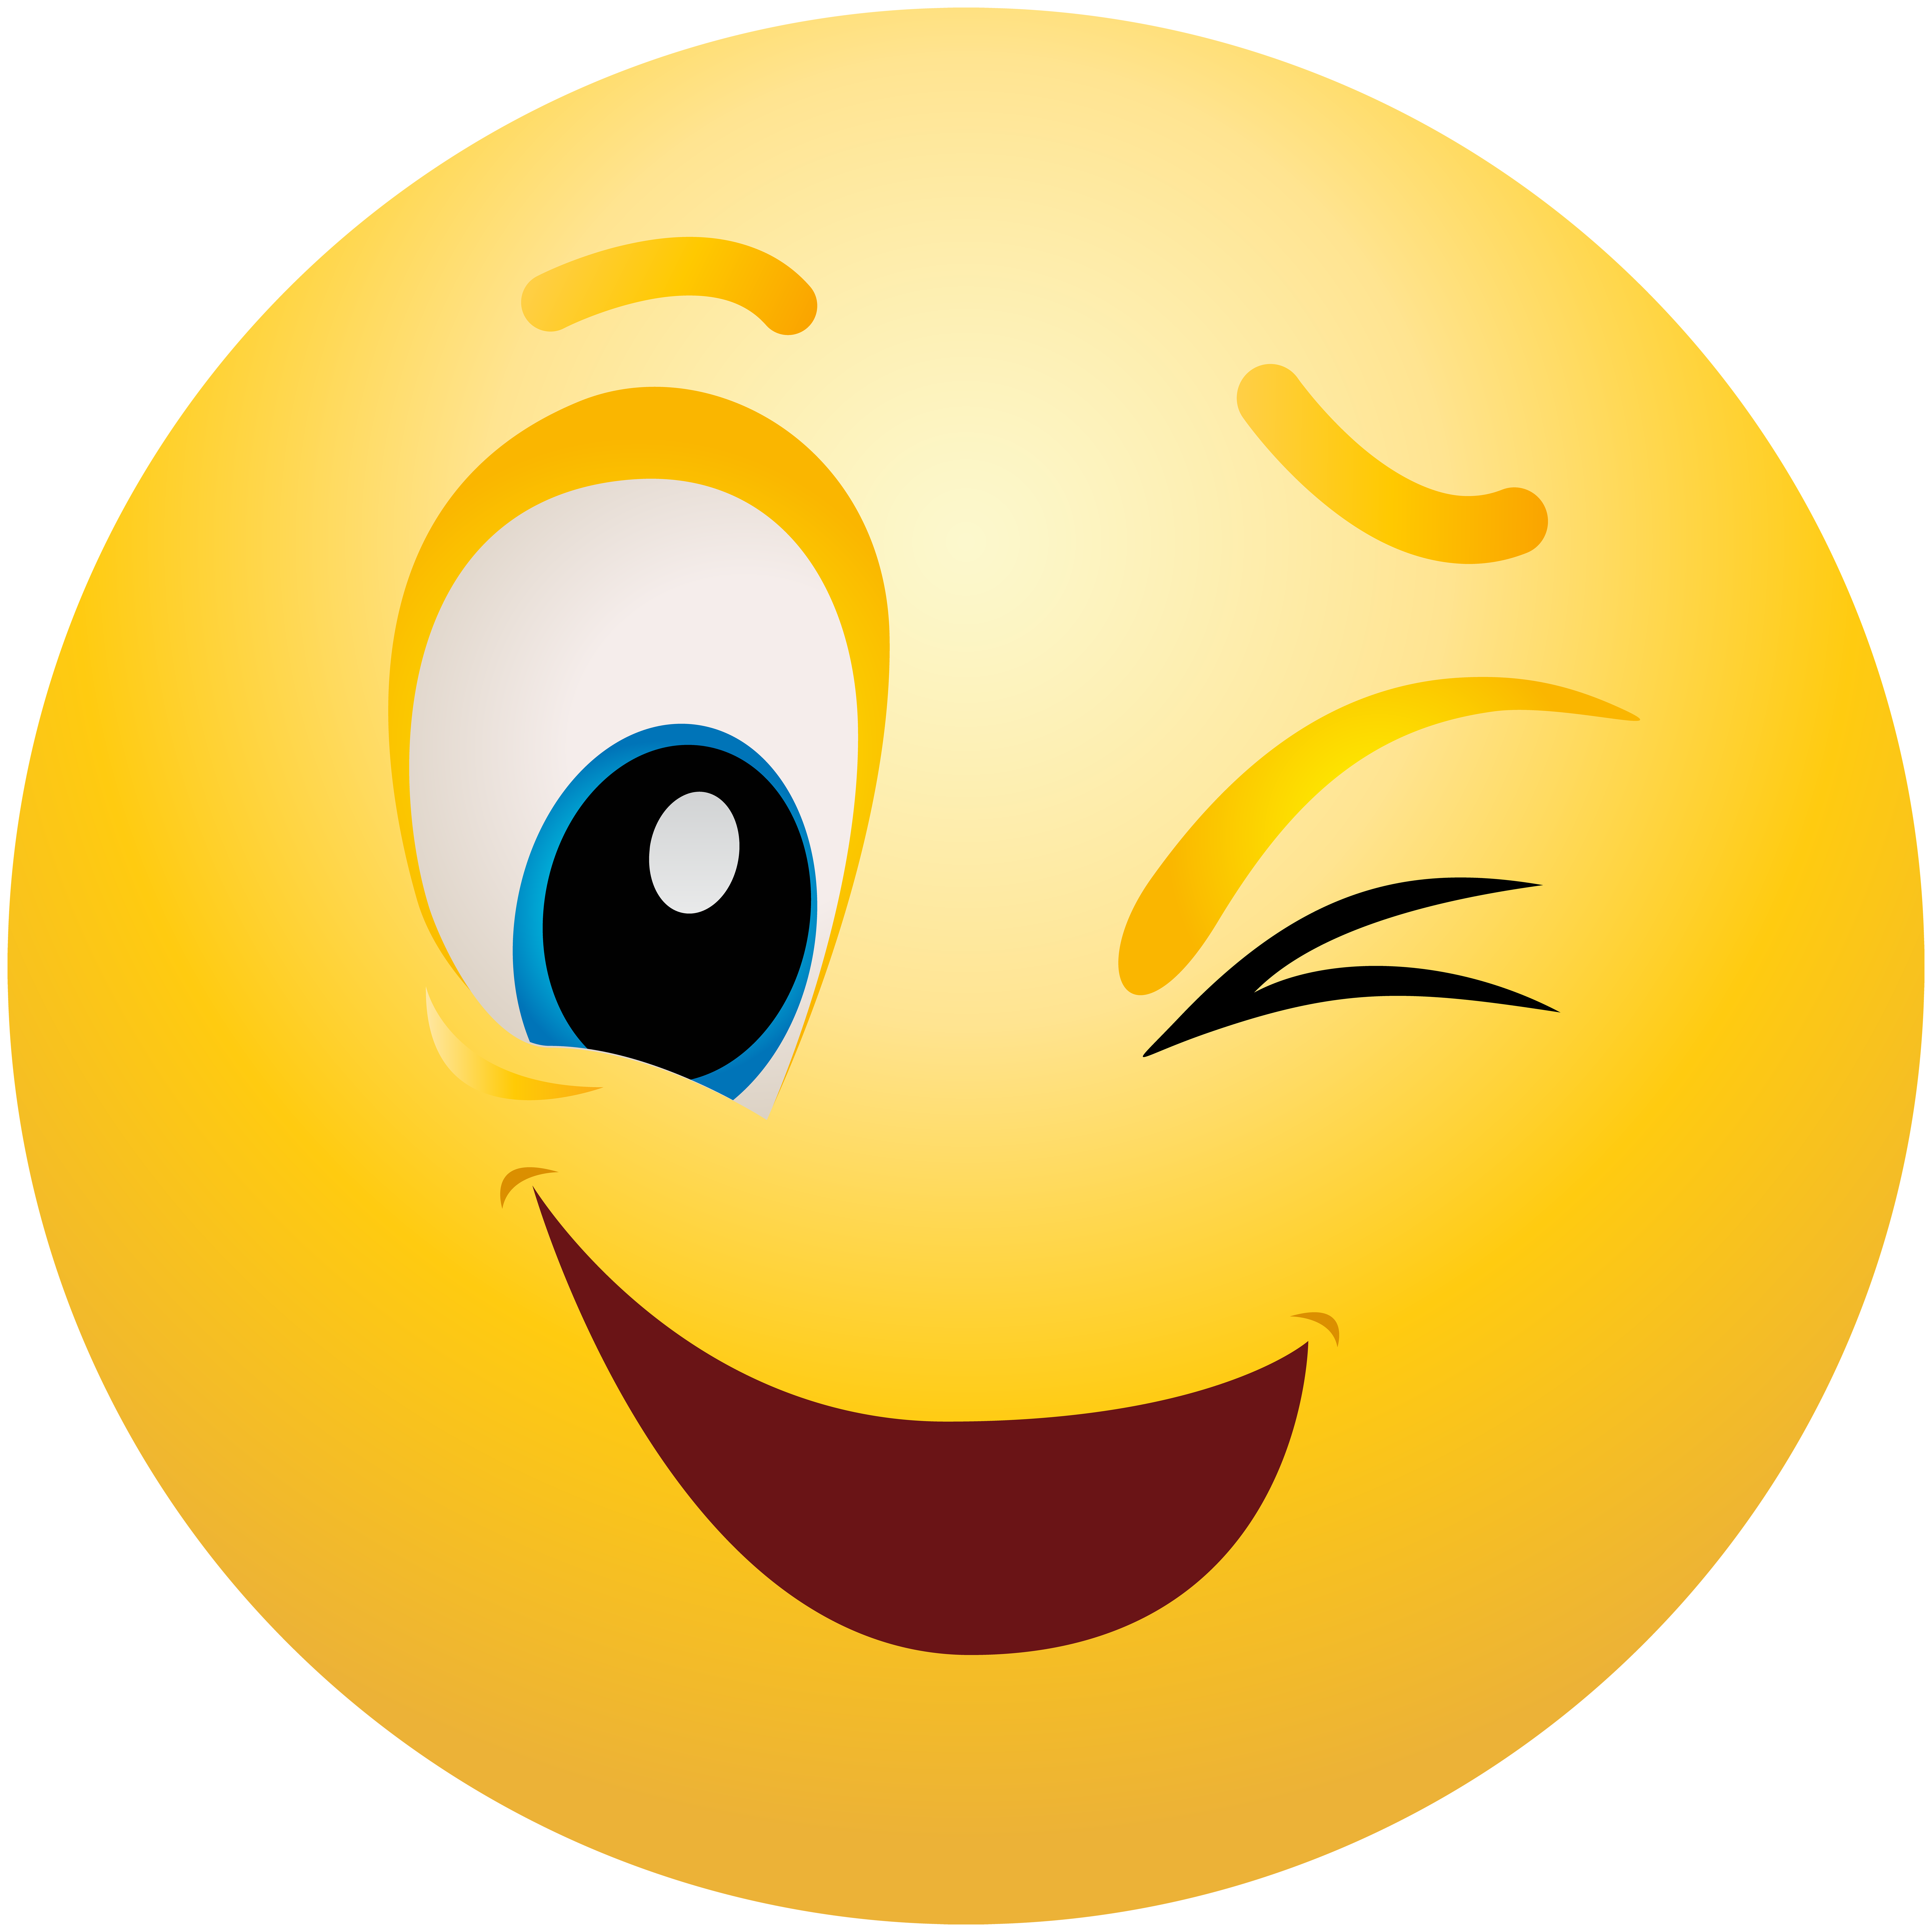 Emoticon png best web. Smiley face clip art winking